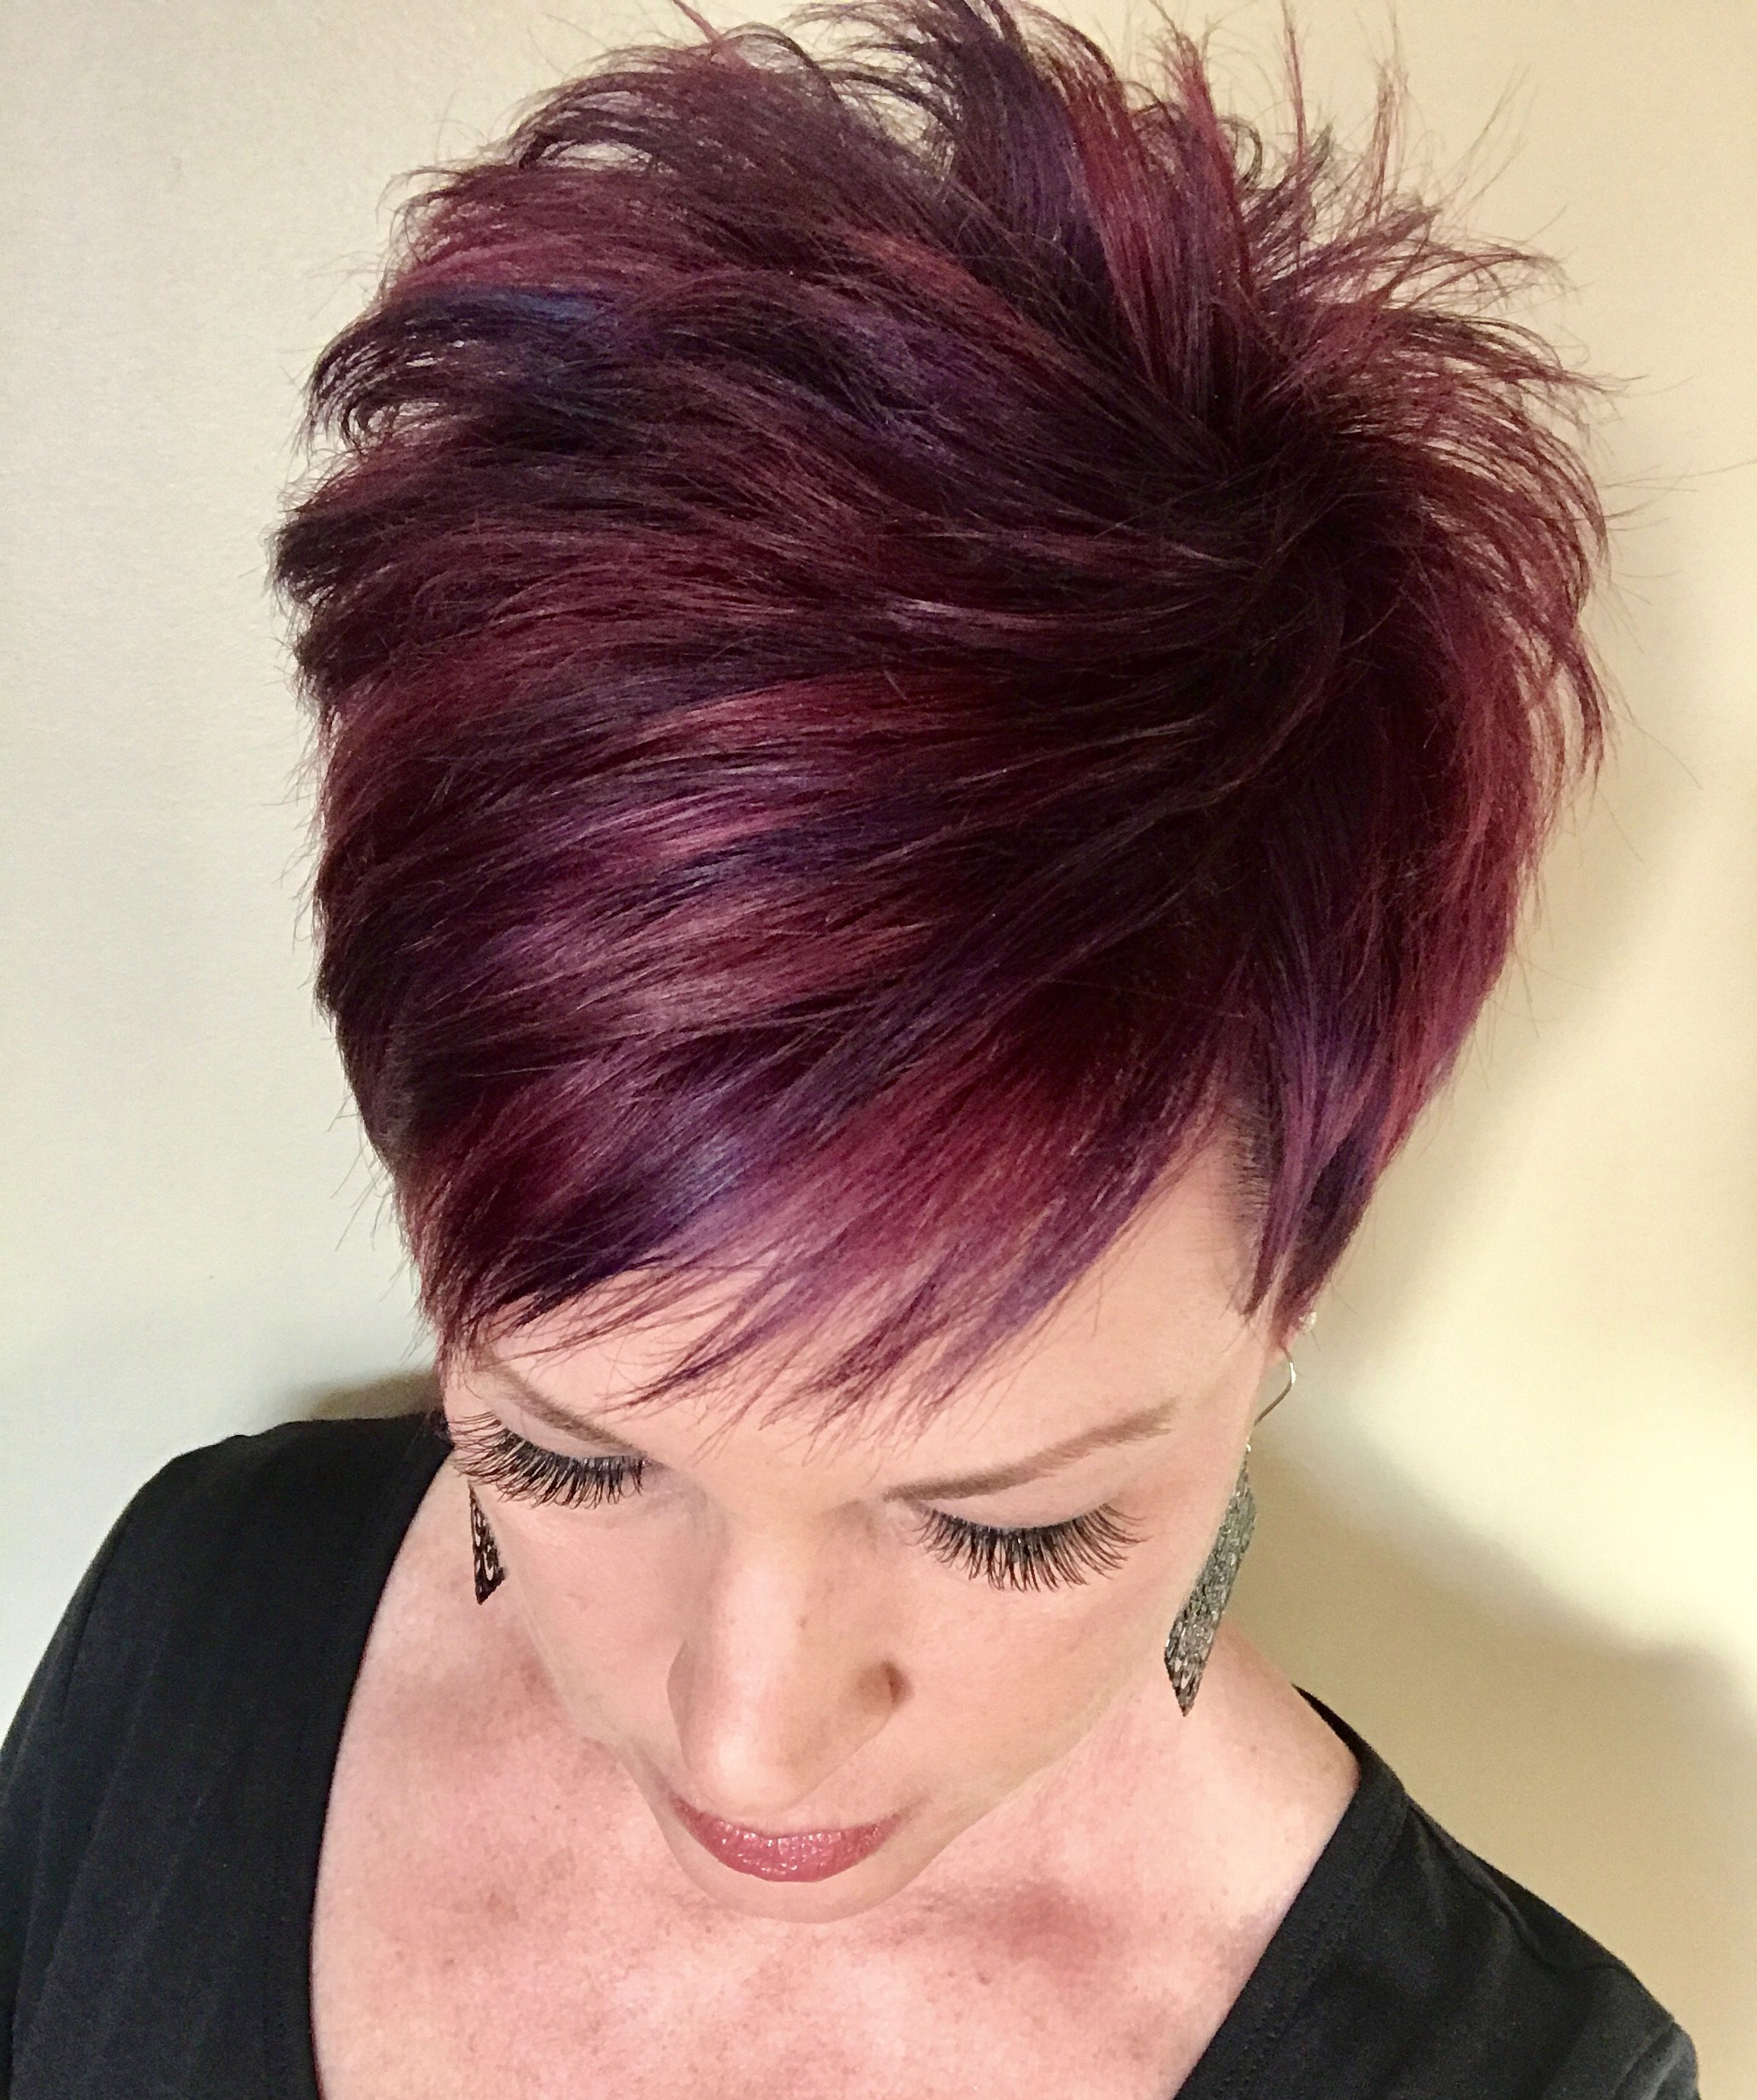 Korte Pixi | Kapsels | Pinterest | Short Hair, Hair Style And Hair Cuts Pertaining To Edgy Purple Tinted Pixie Haircuts (View 16 of 20)